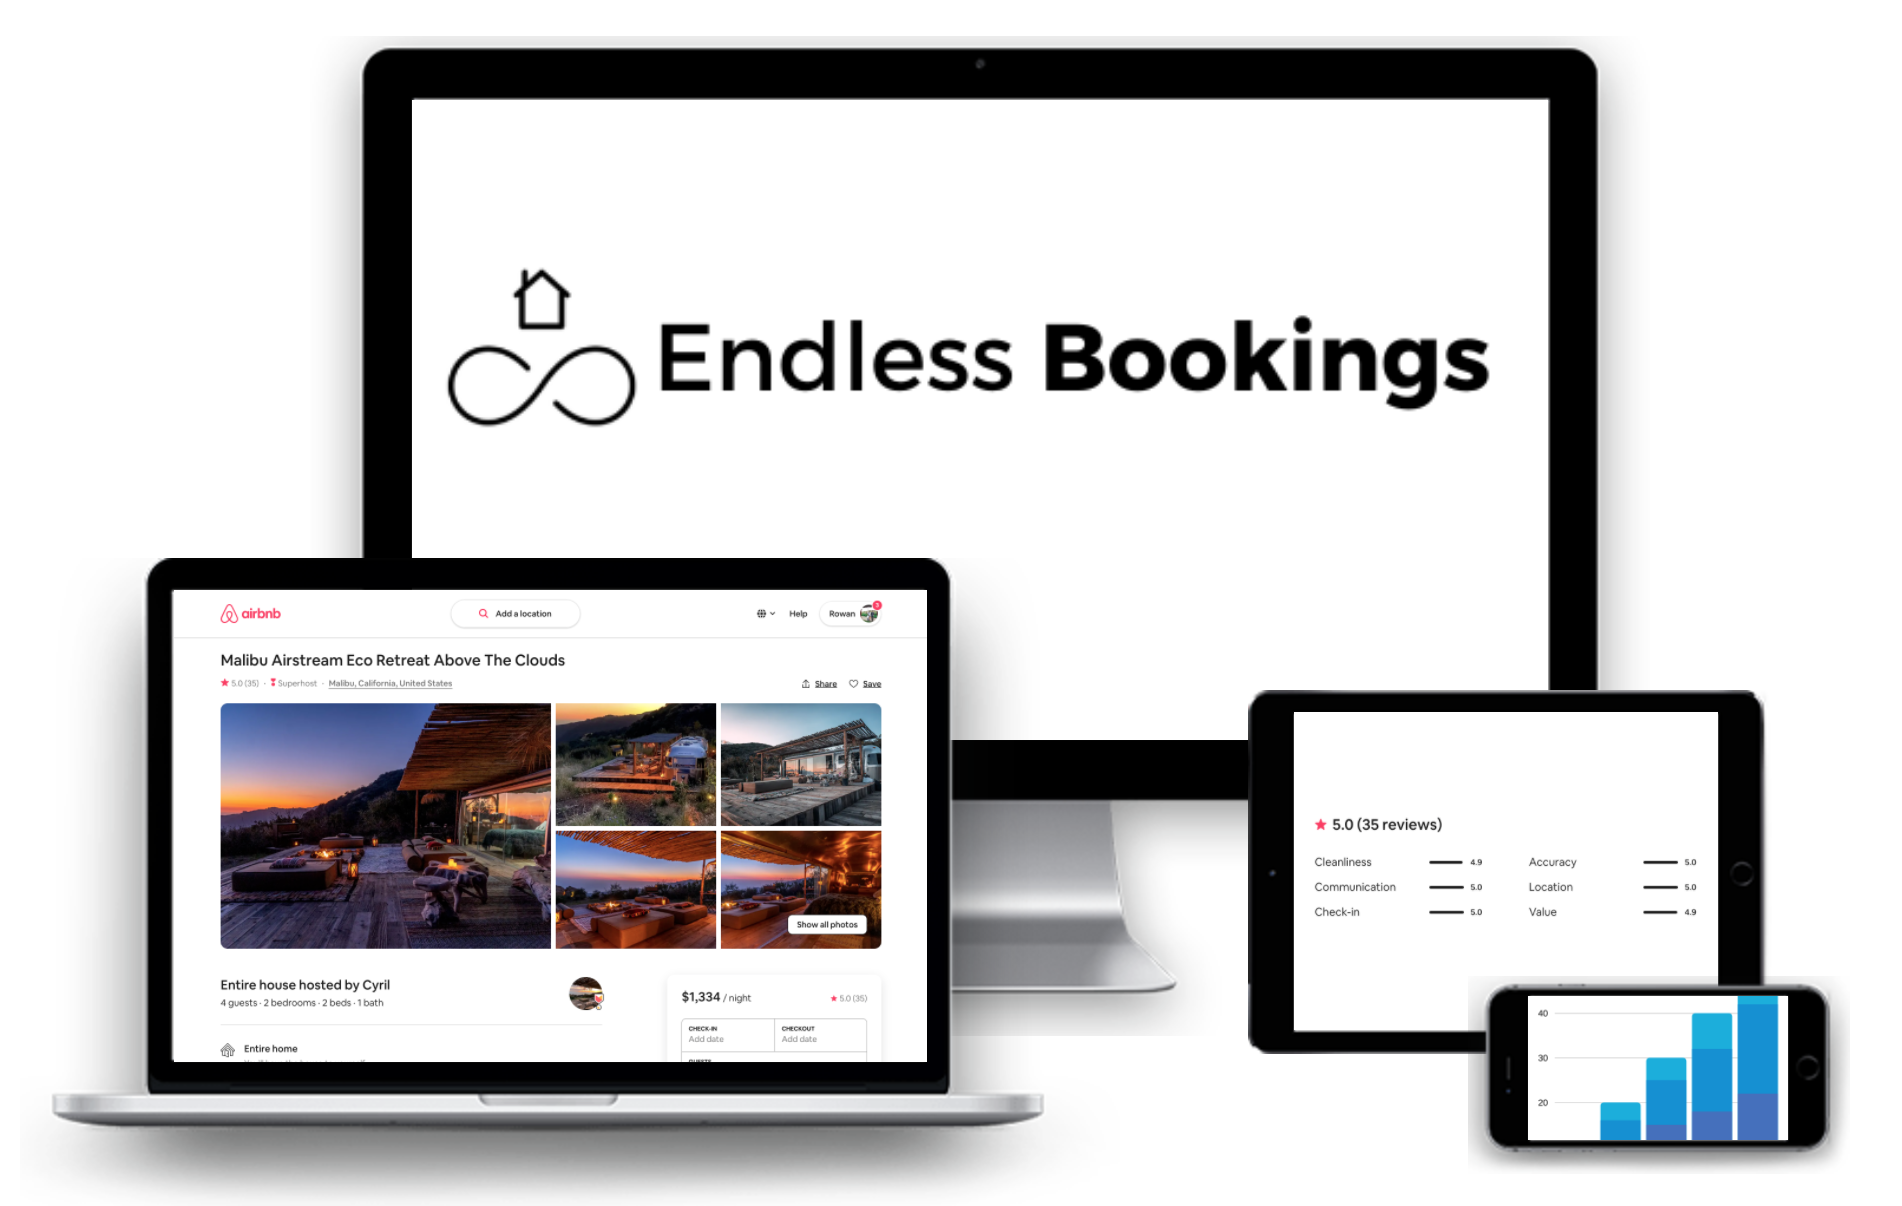 Endless booking product image